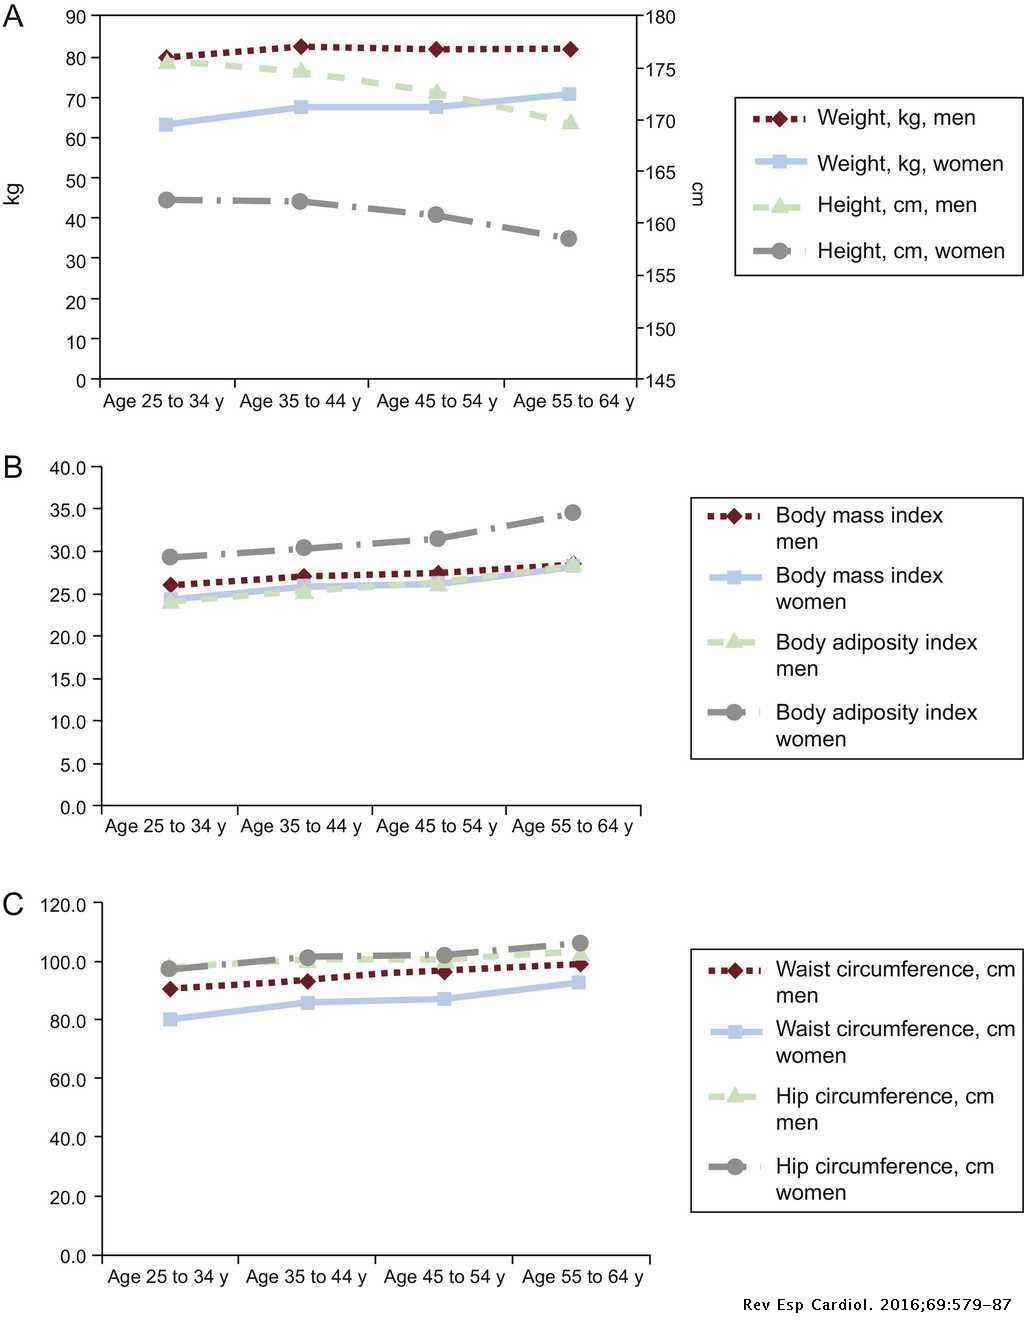 Prevalence of General Obesity and Abdominal Obesity in the Spanish